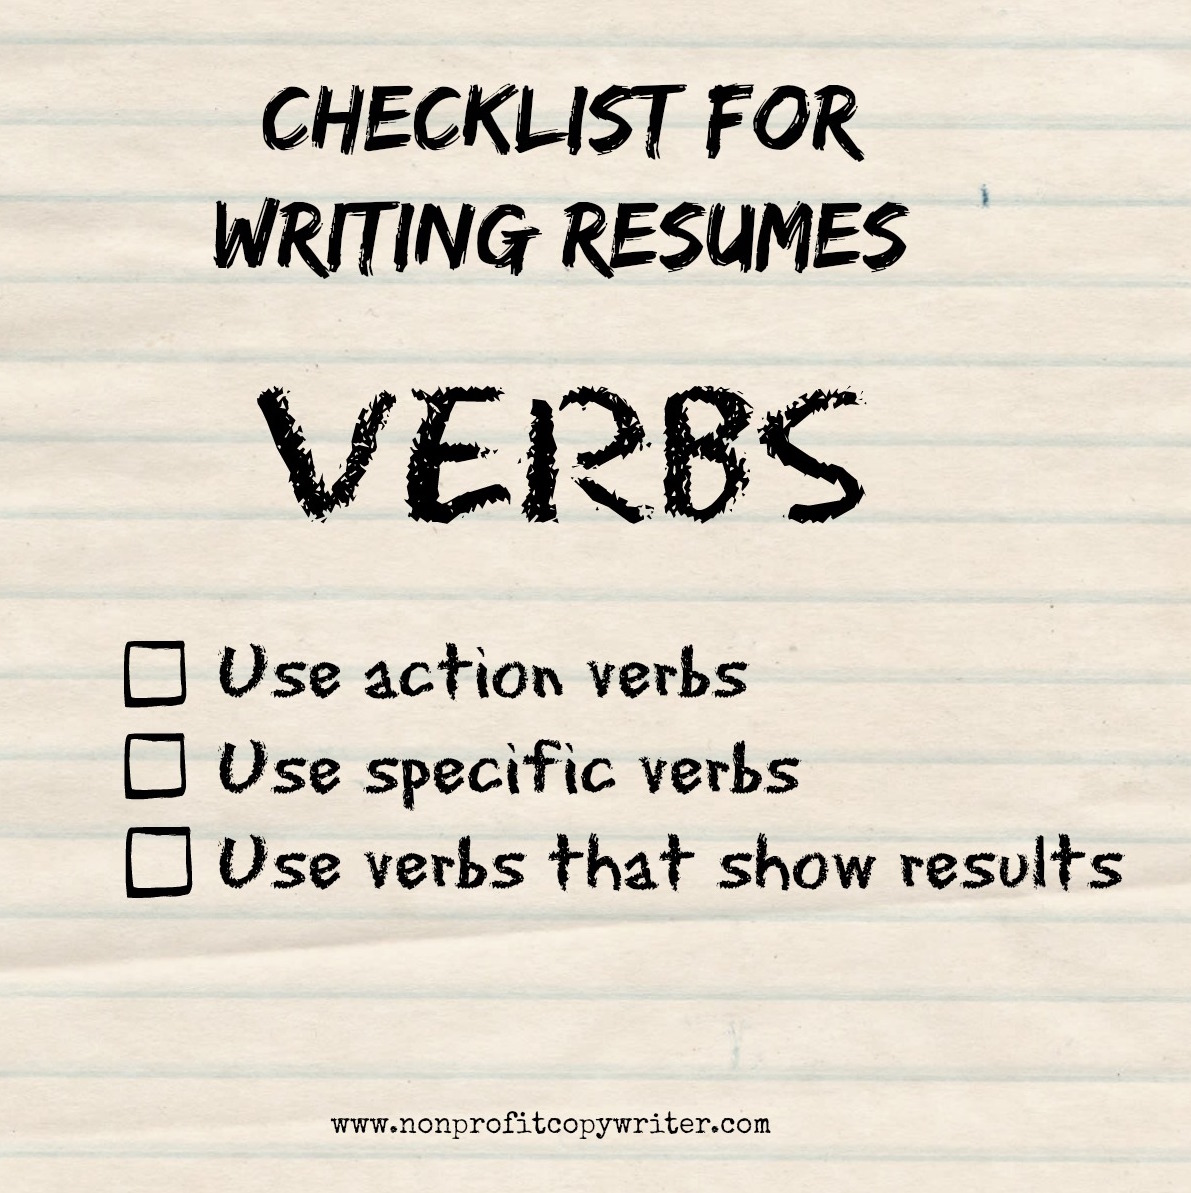 a resume writing guide to using verbs how tos for words that show